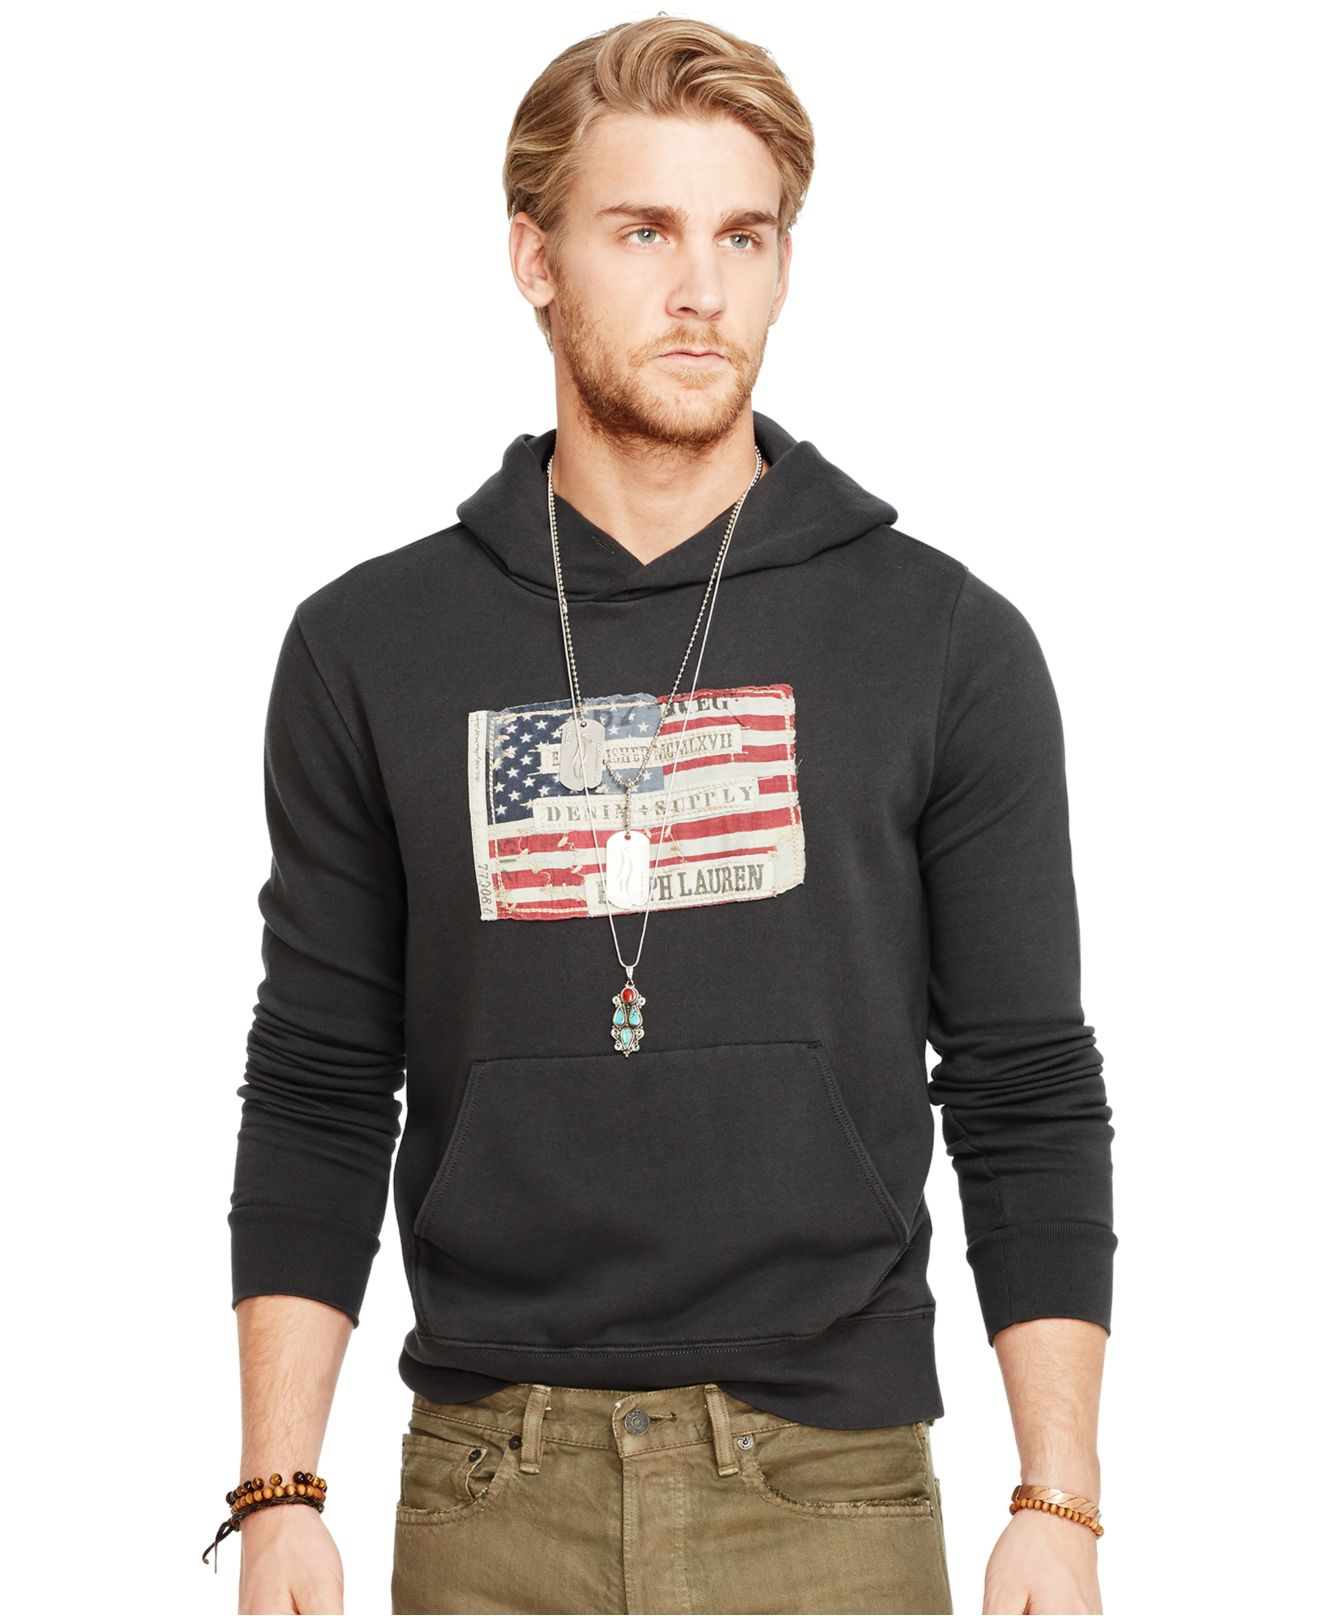 pretty cheap sold worldwide more photos American Flag-inspired Hoodie